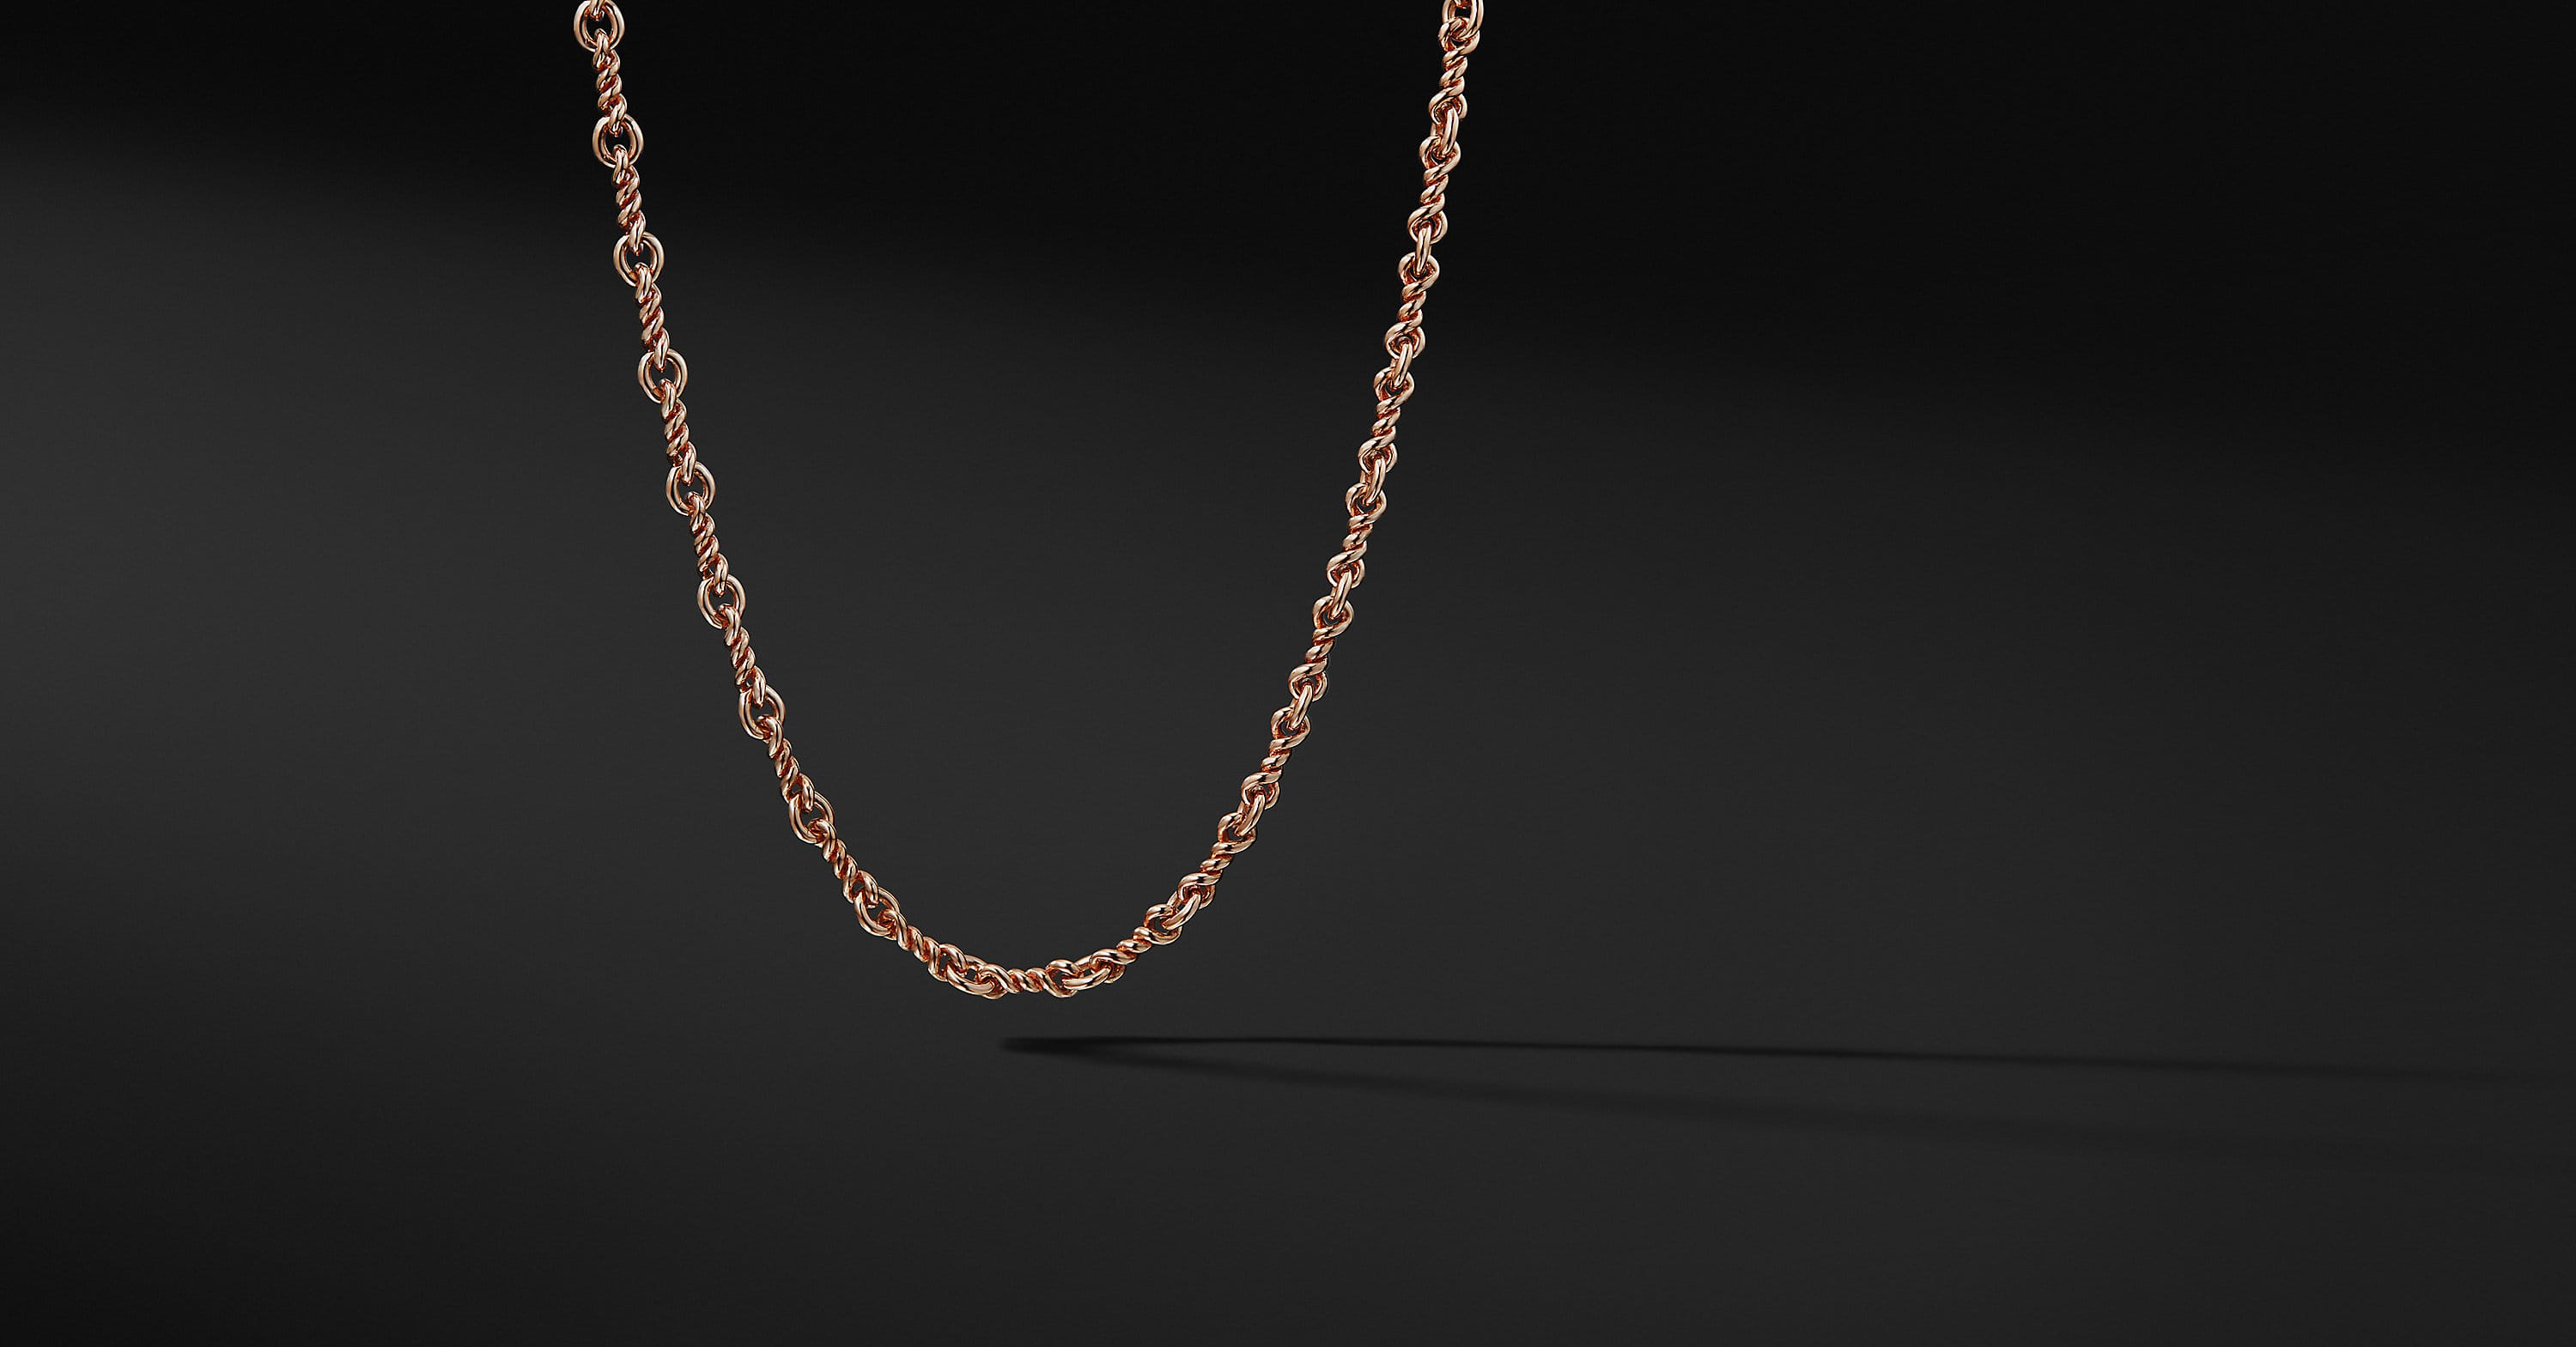 Continuance Cable Twist Chain Necklace in 18K Rose Gold